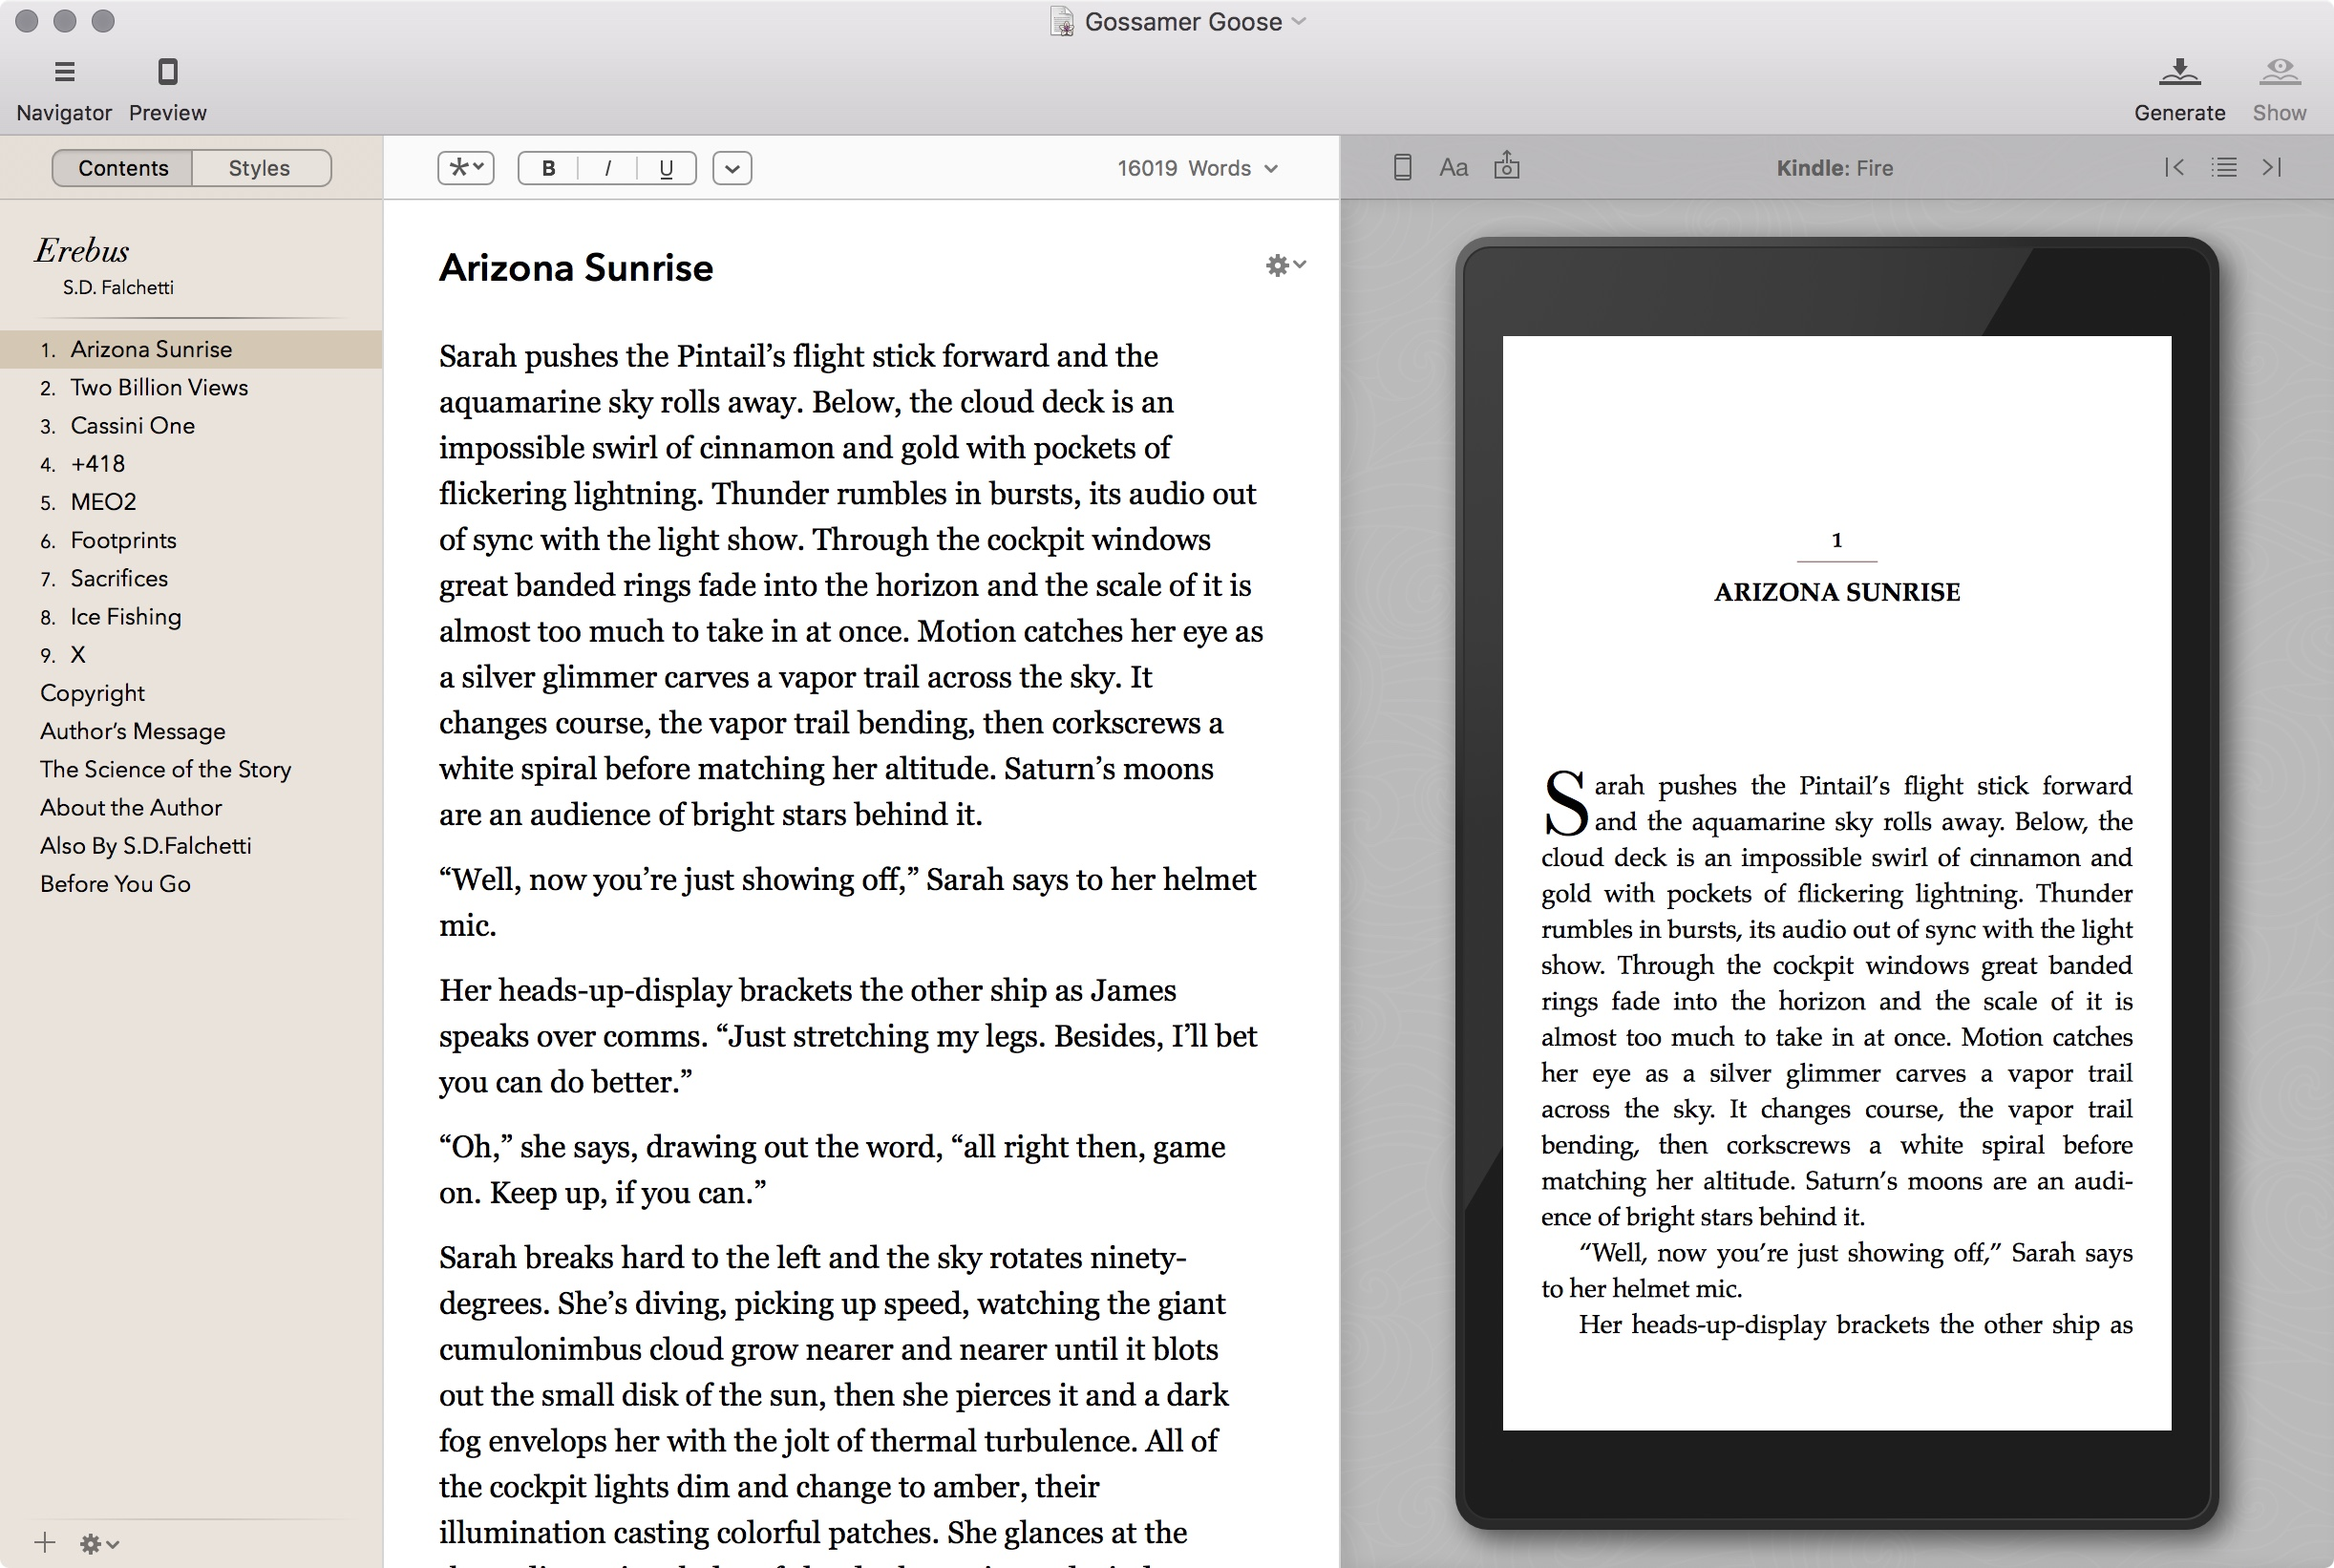 Vellum file for Erebus. Very easy to create a professional ebook or paperback.